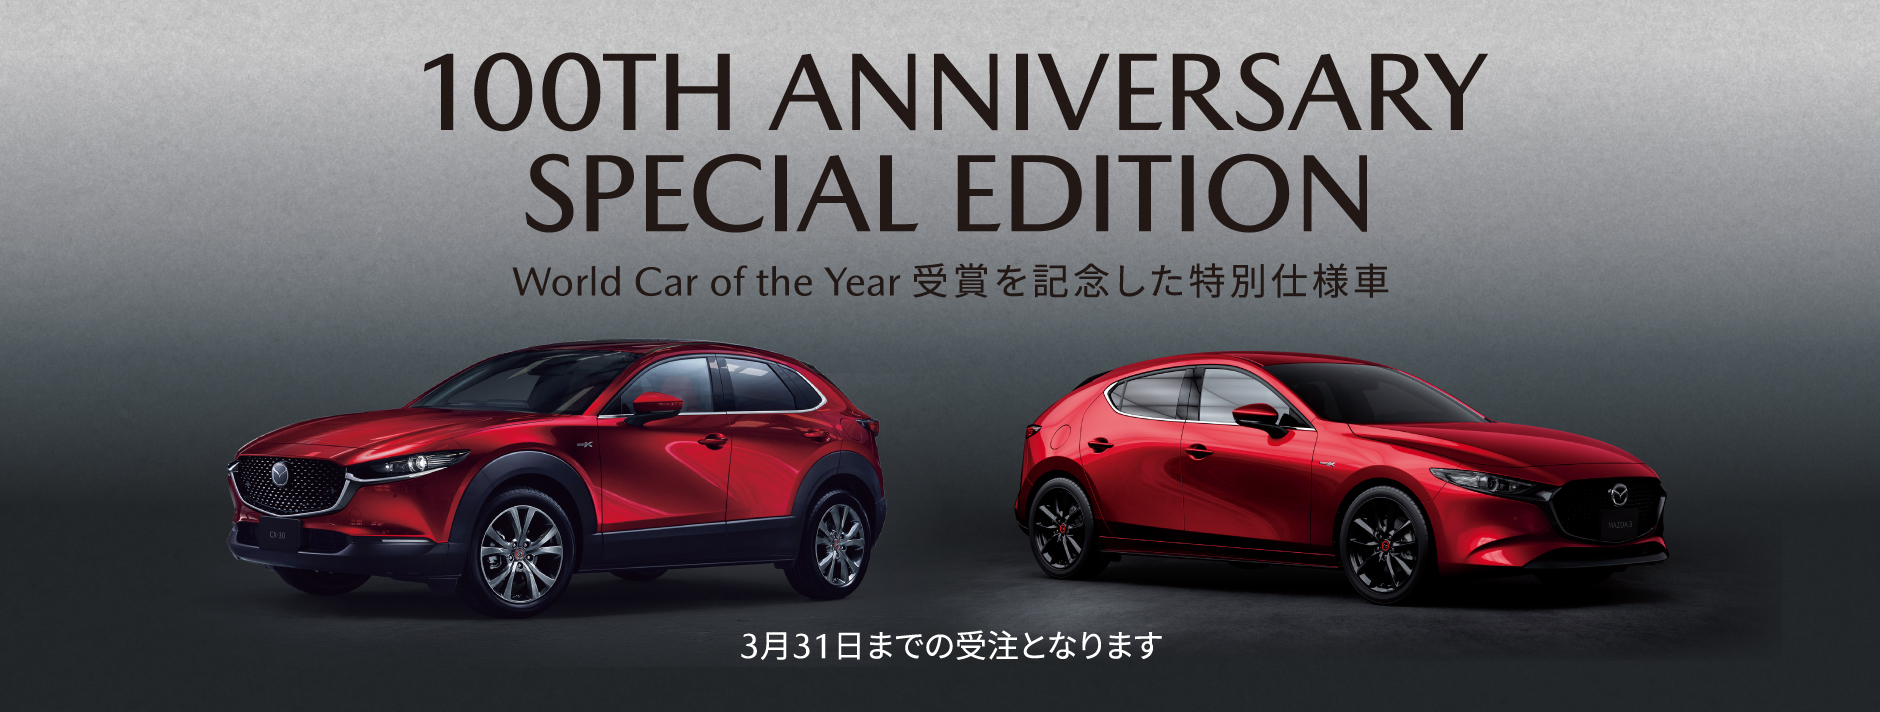 100TH ANNIVERSARY SPECIAL EDITION